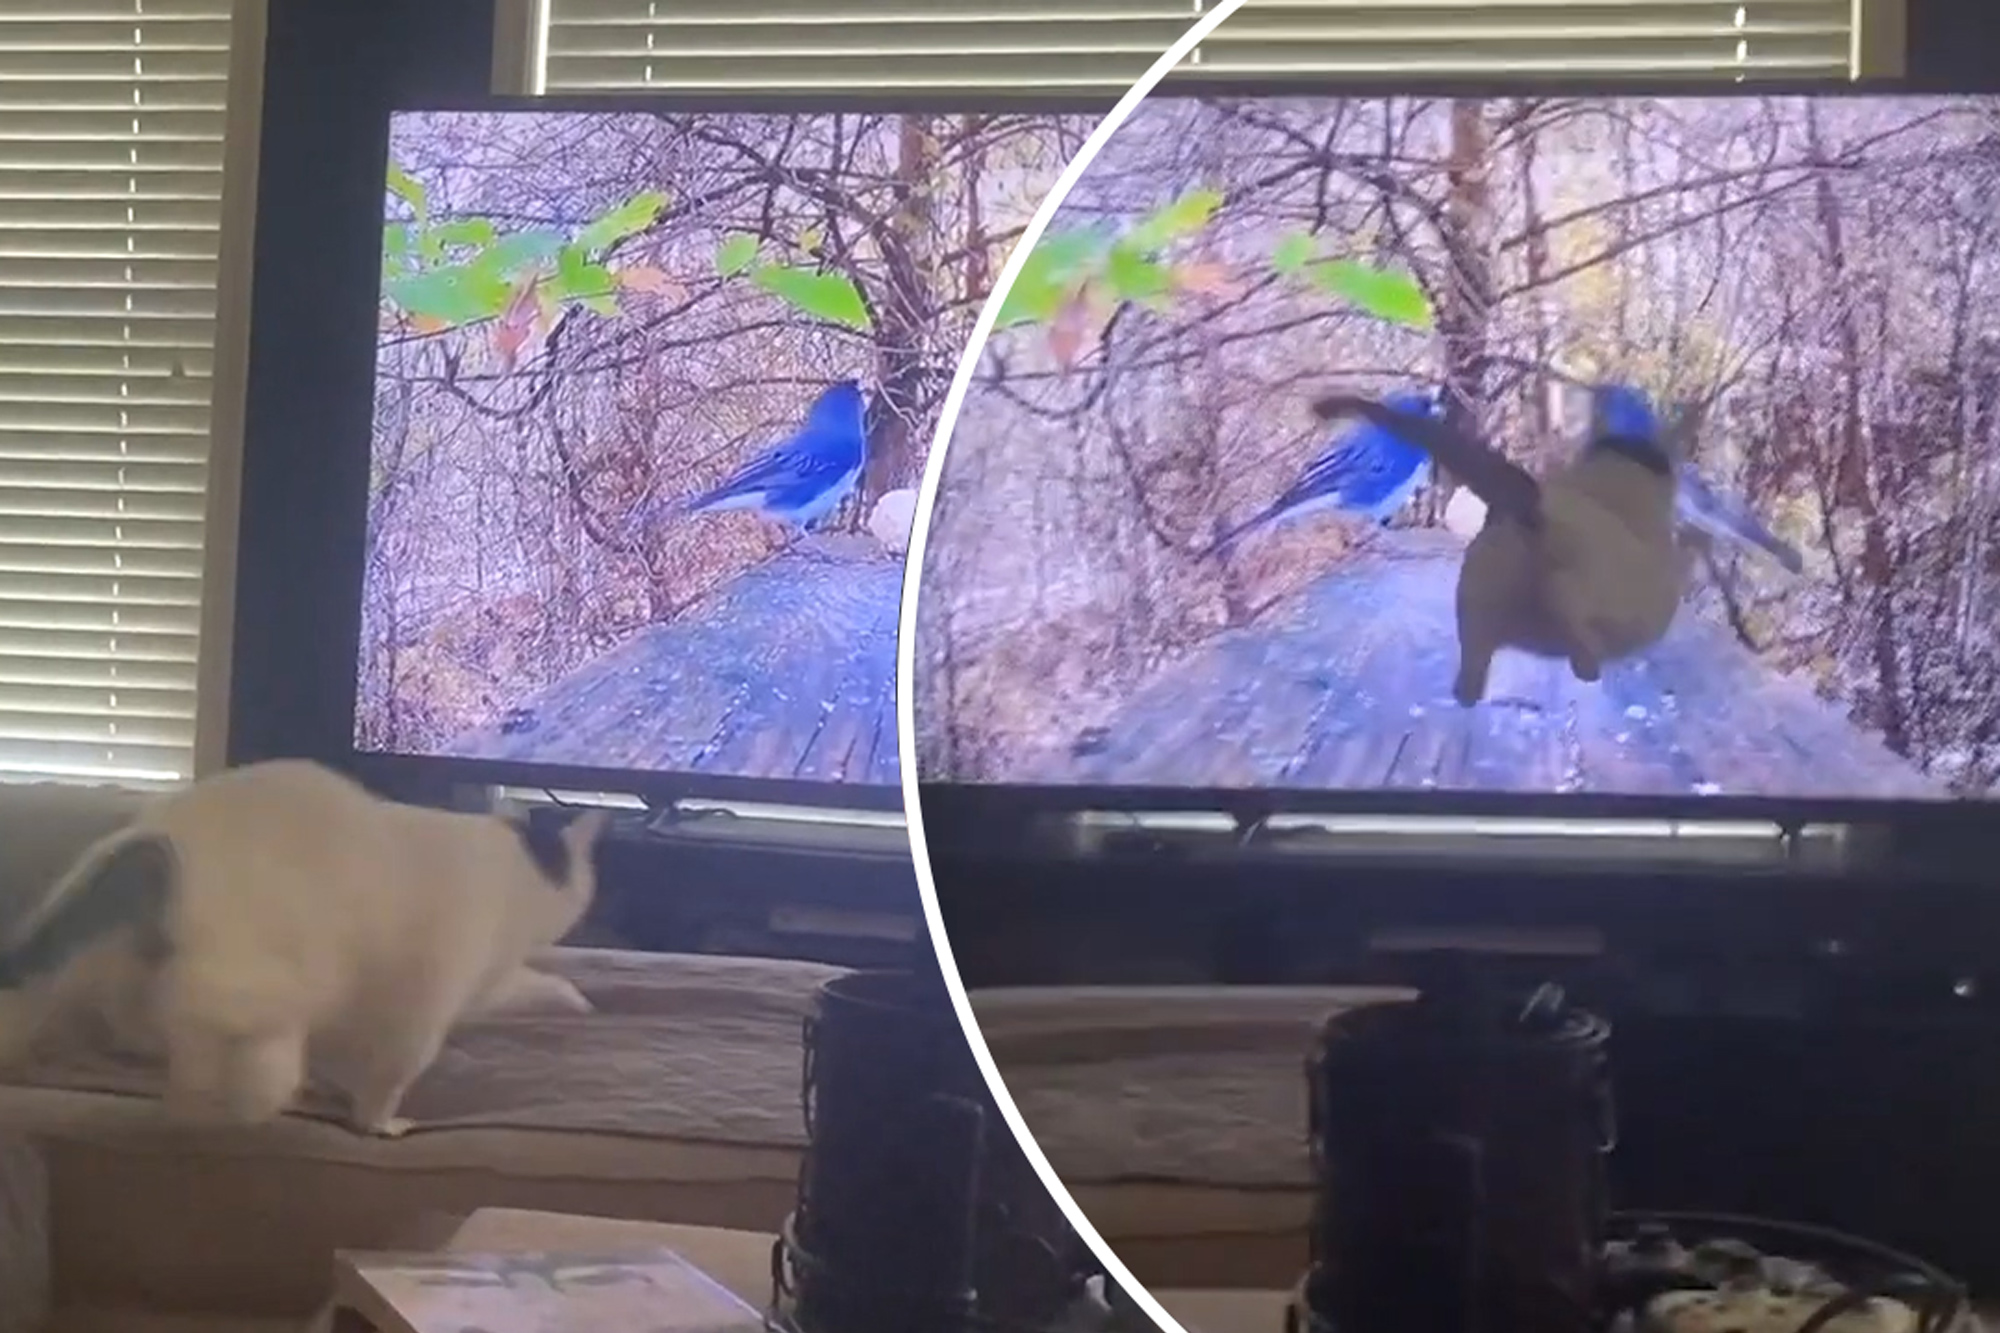 Funny Cat Video Kitty Jumps At Birds On Tv Screen Video New York Post